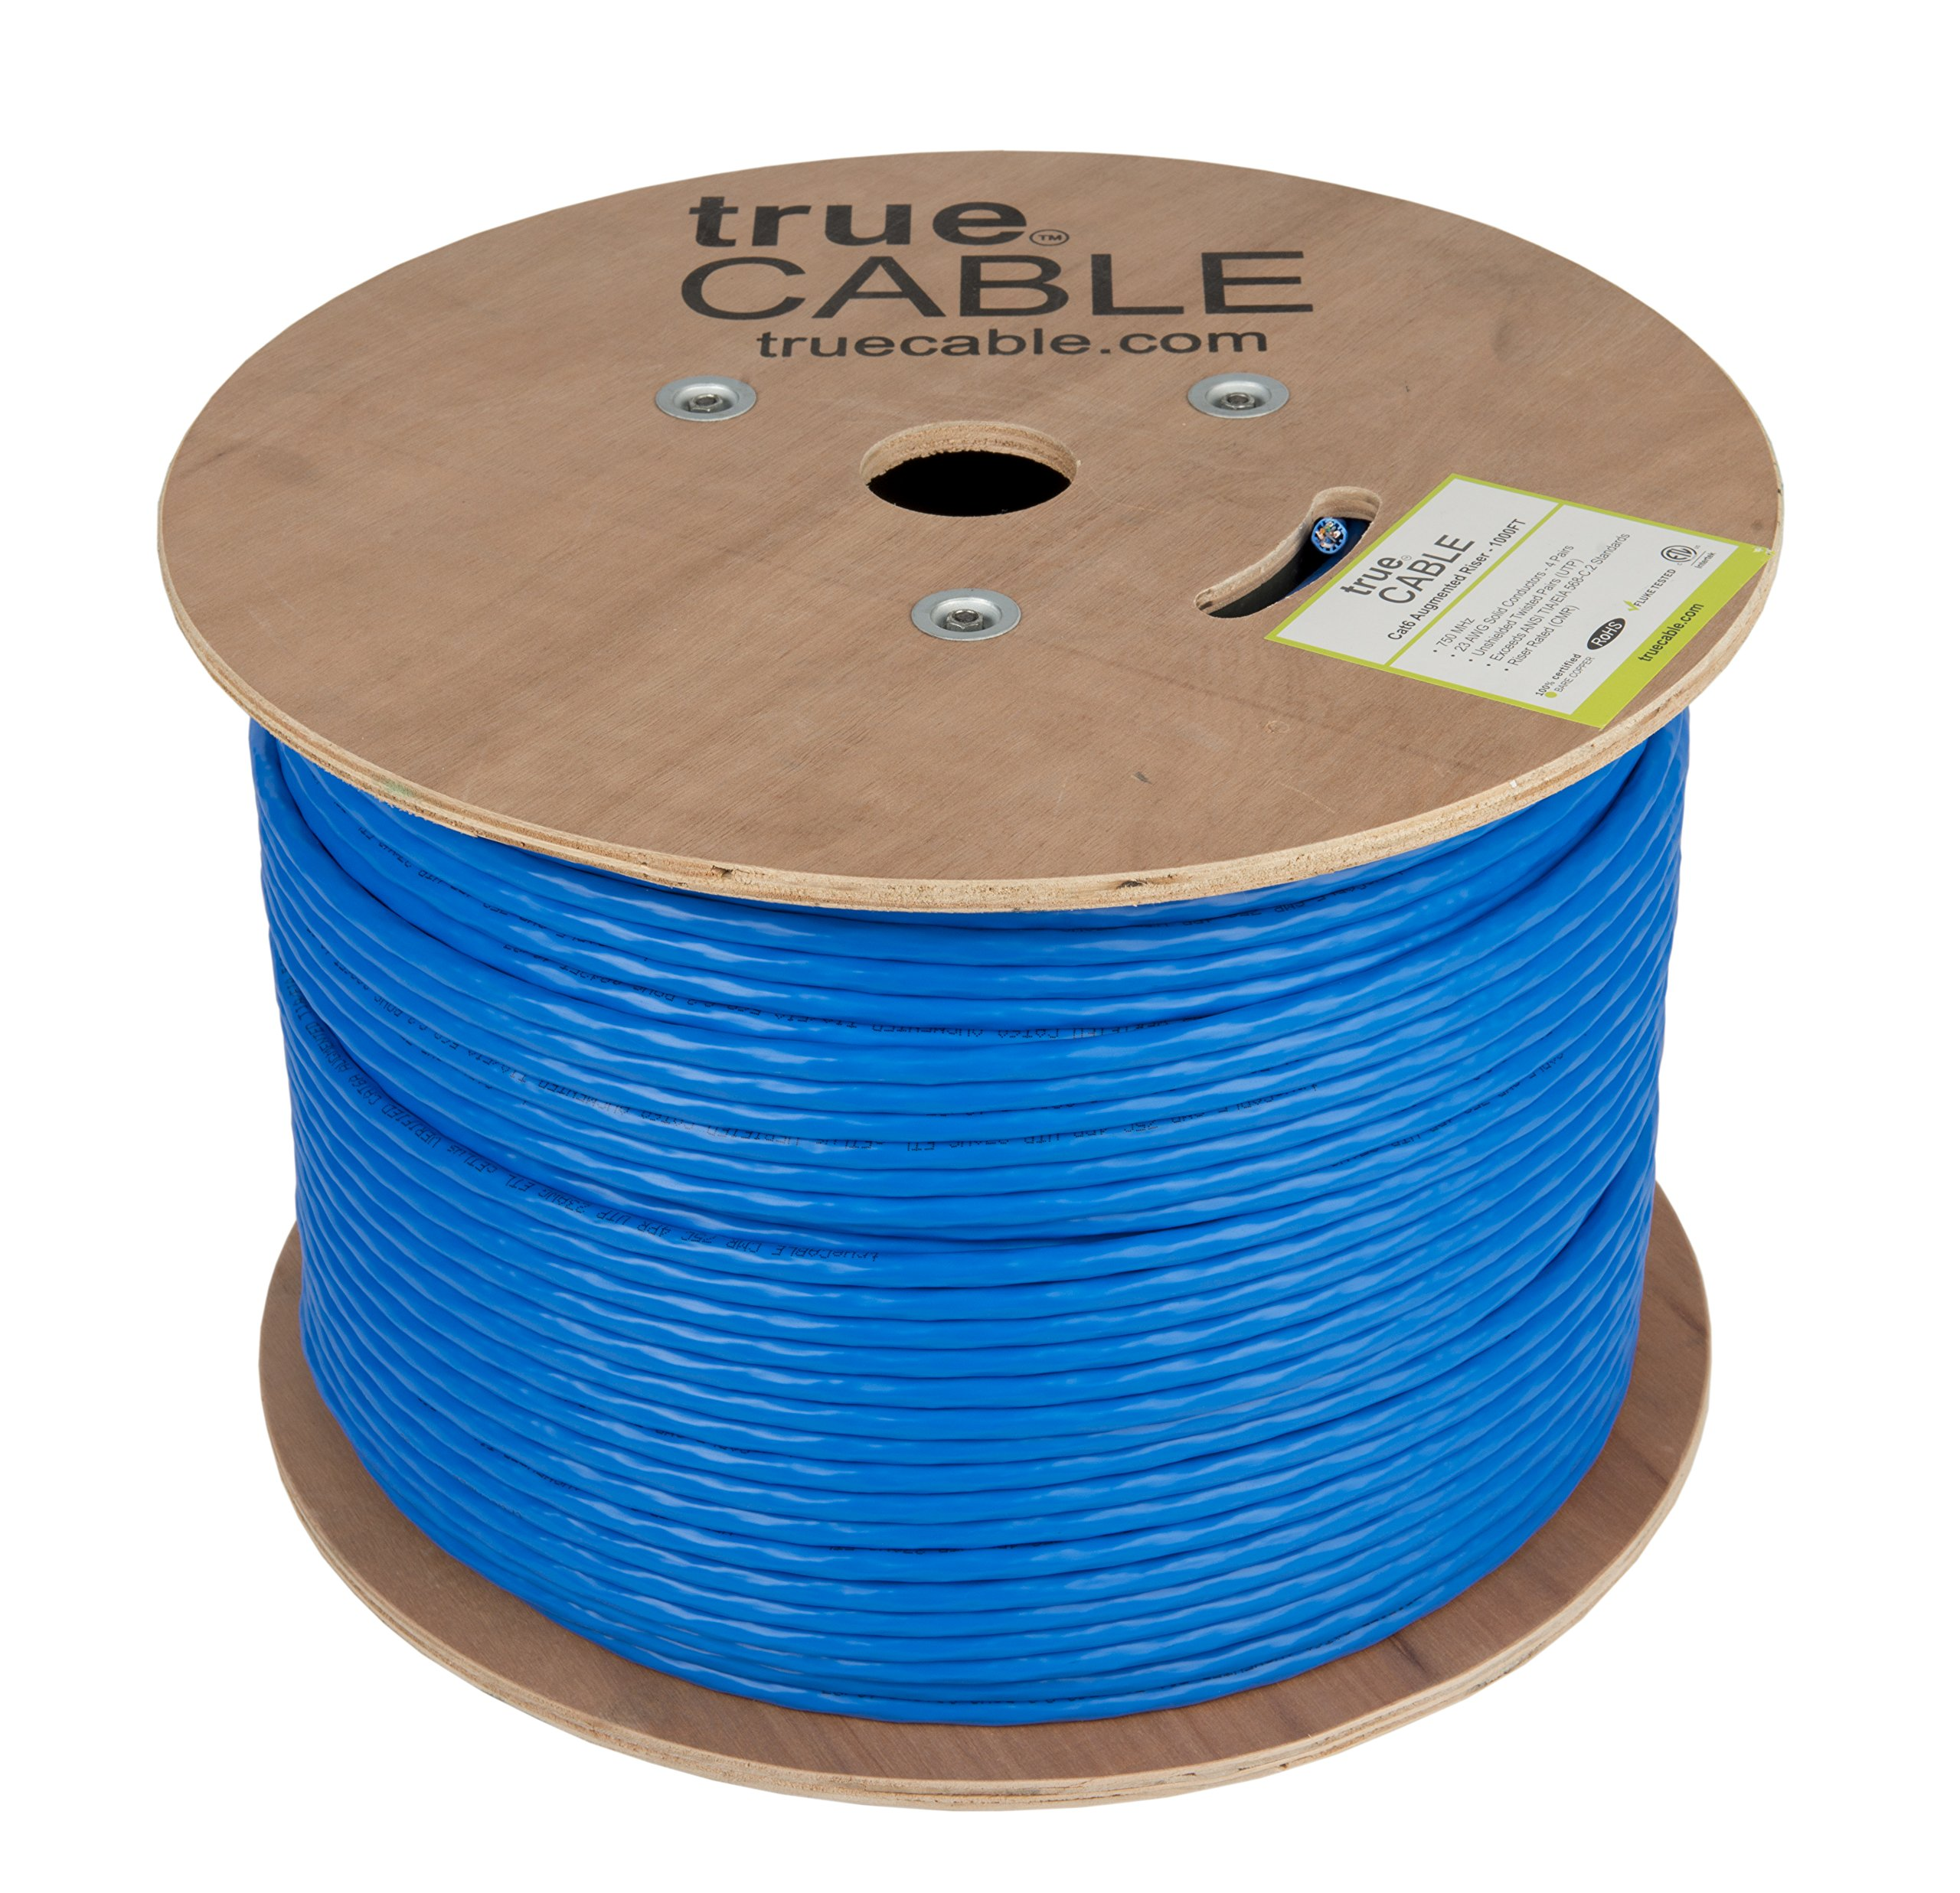 Cat6A Riser (CMR), 1000ft, Blue, Solid Bare Copper Bulk Ethernet Cable, 750MHz, ETL Listed, 23AWG 4 Pair, Unshielded Twisted Pair (UTP), trueCABLE by trueCABLE (Image #2)